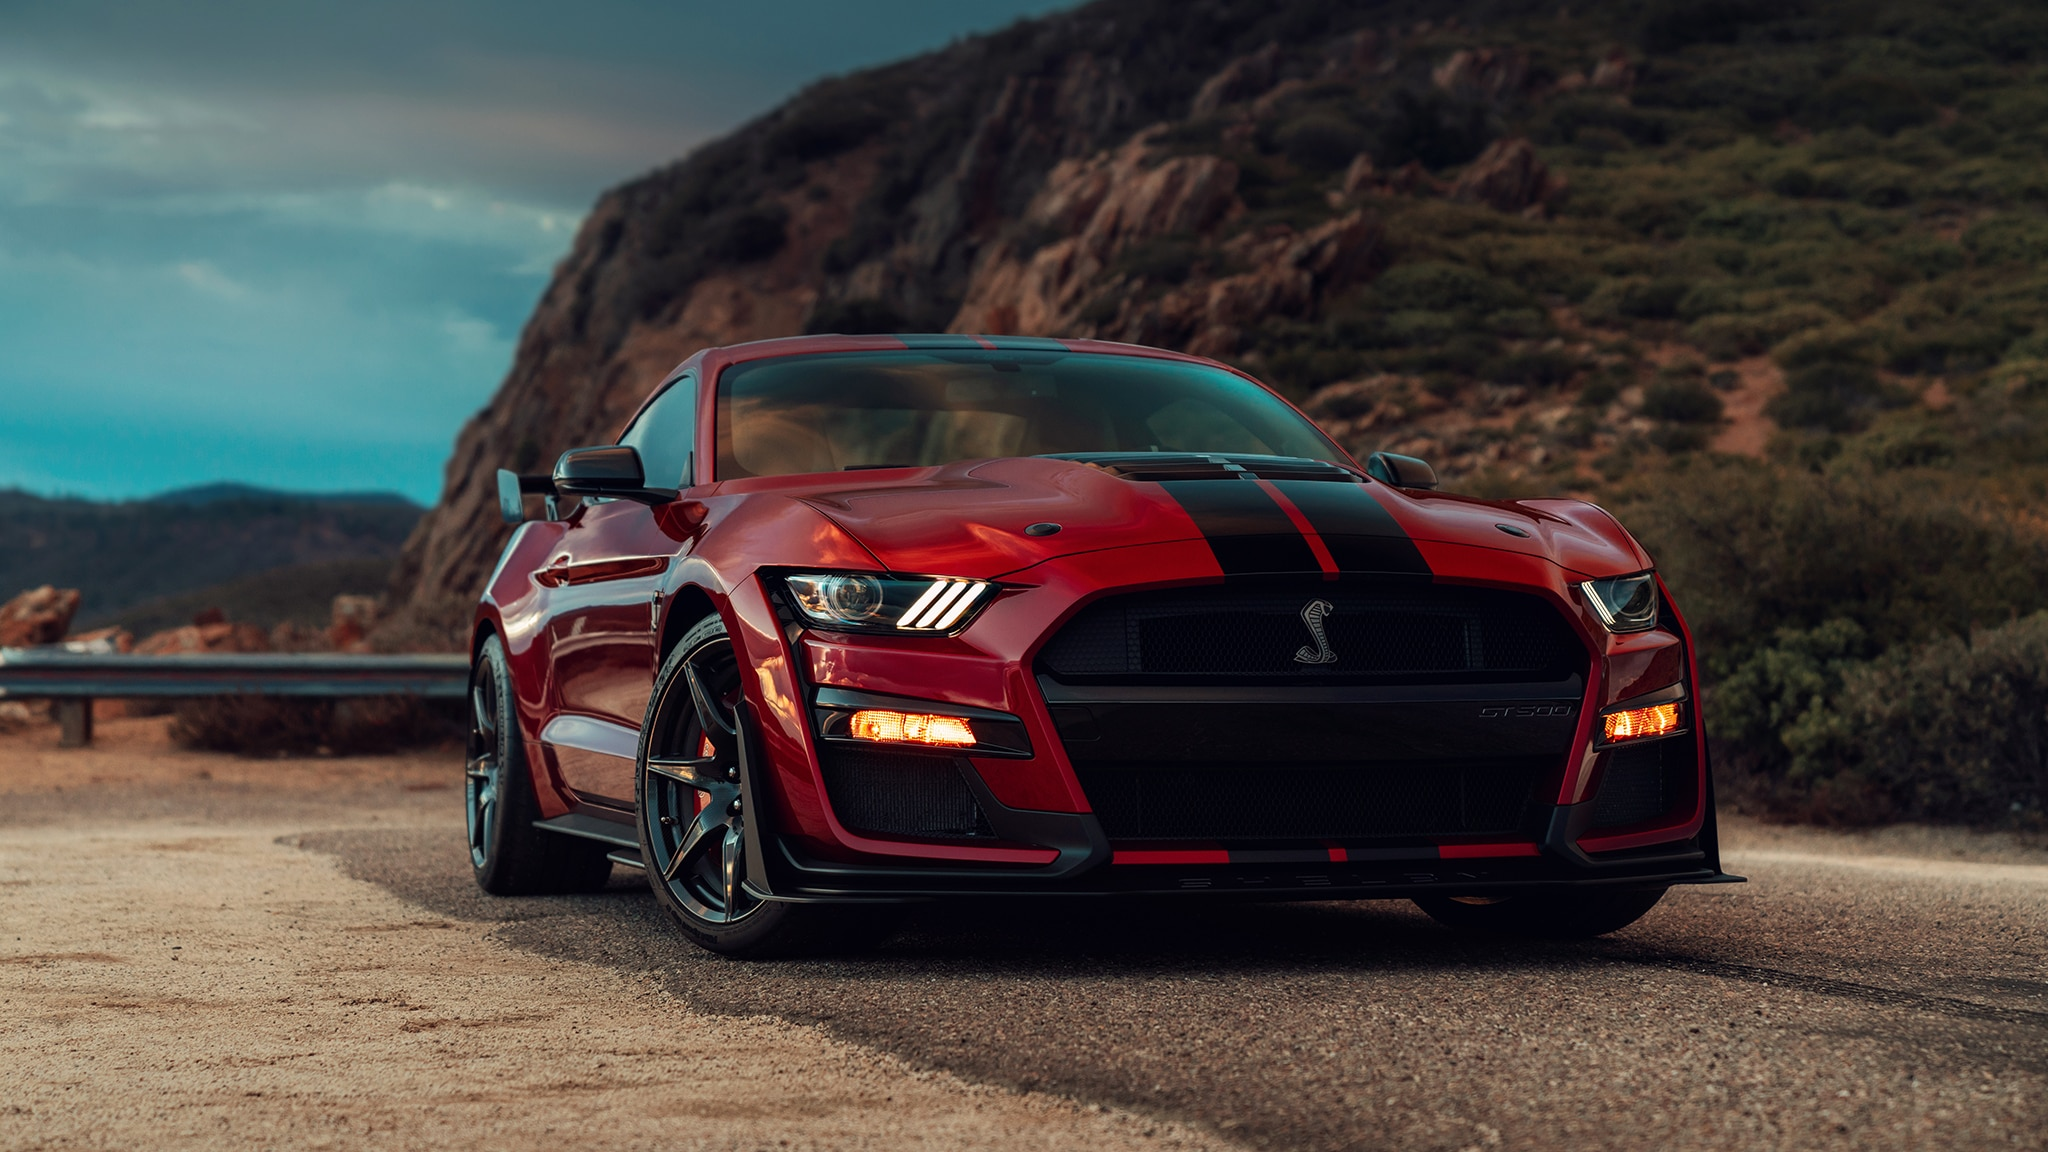 2020 Ford Mustang Shelby GT500: Details on Its 700+HP Engine